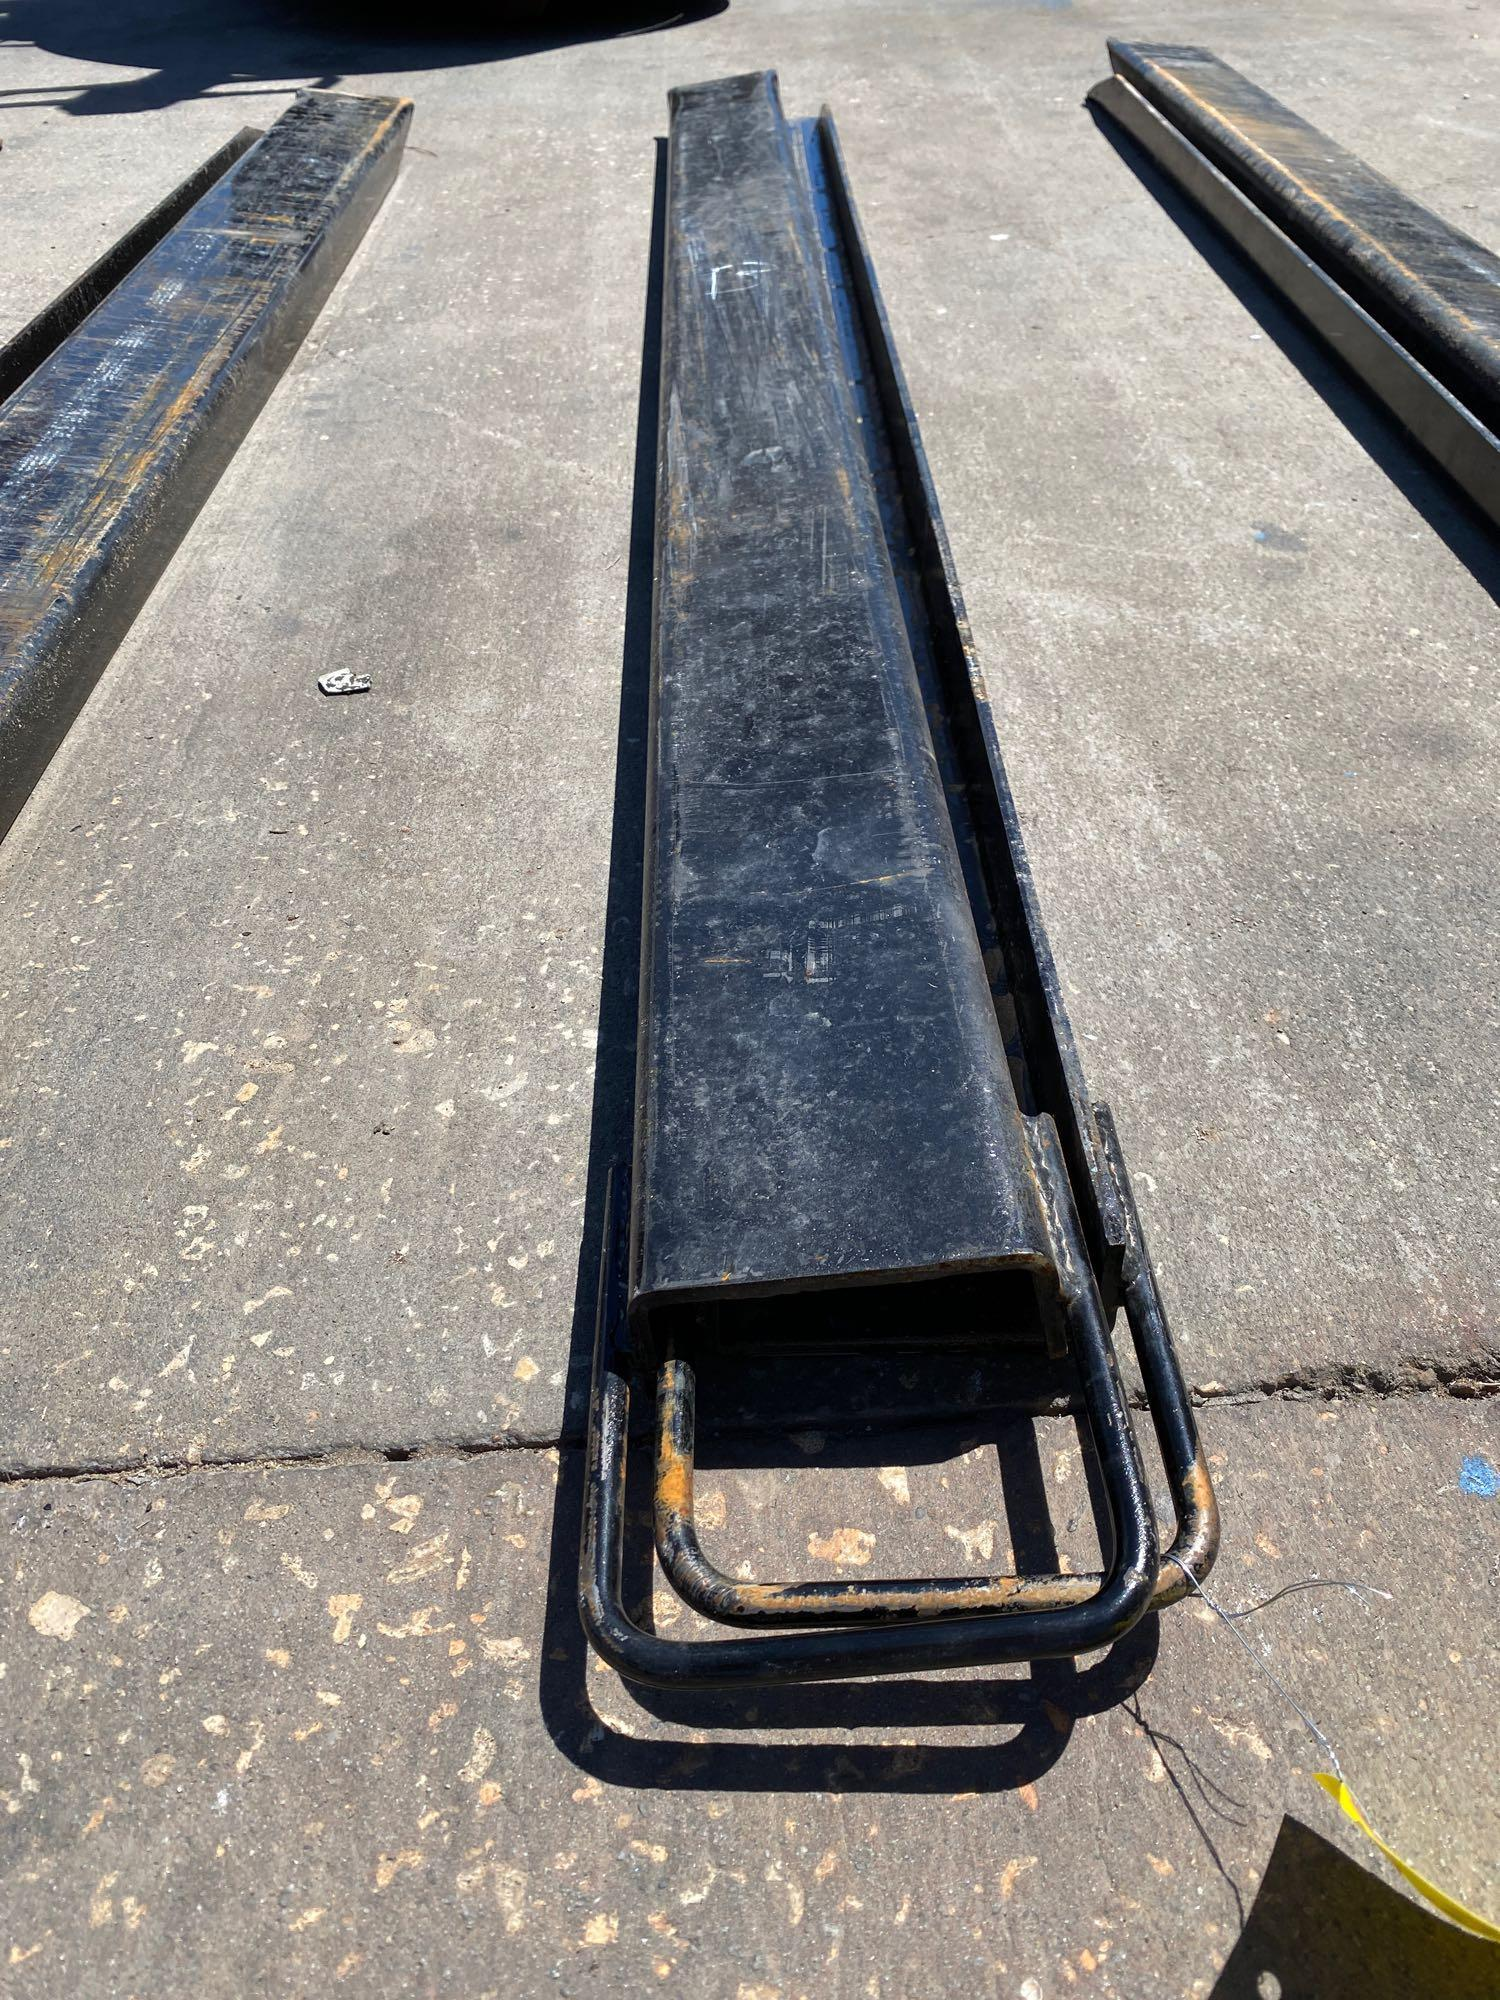 PAIR OF 6' SLIDE ON FORK EXTENSIONS - Image 2 of 2